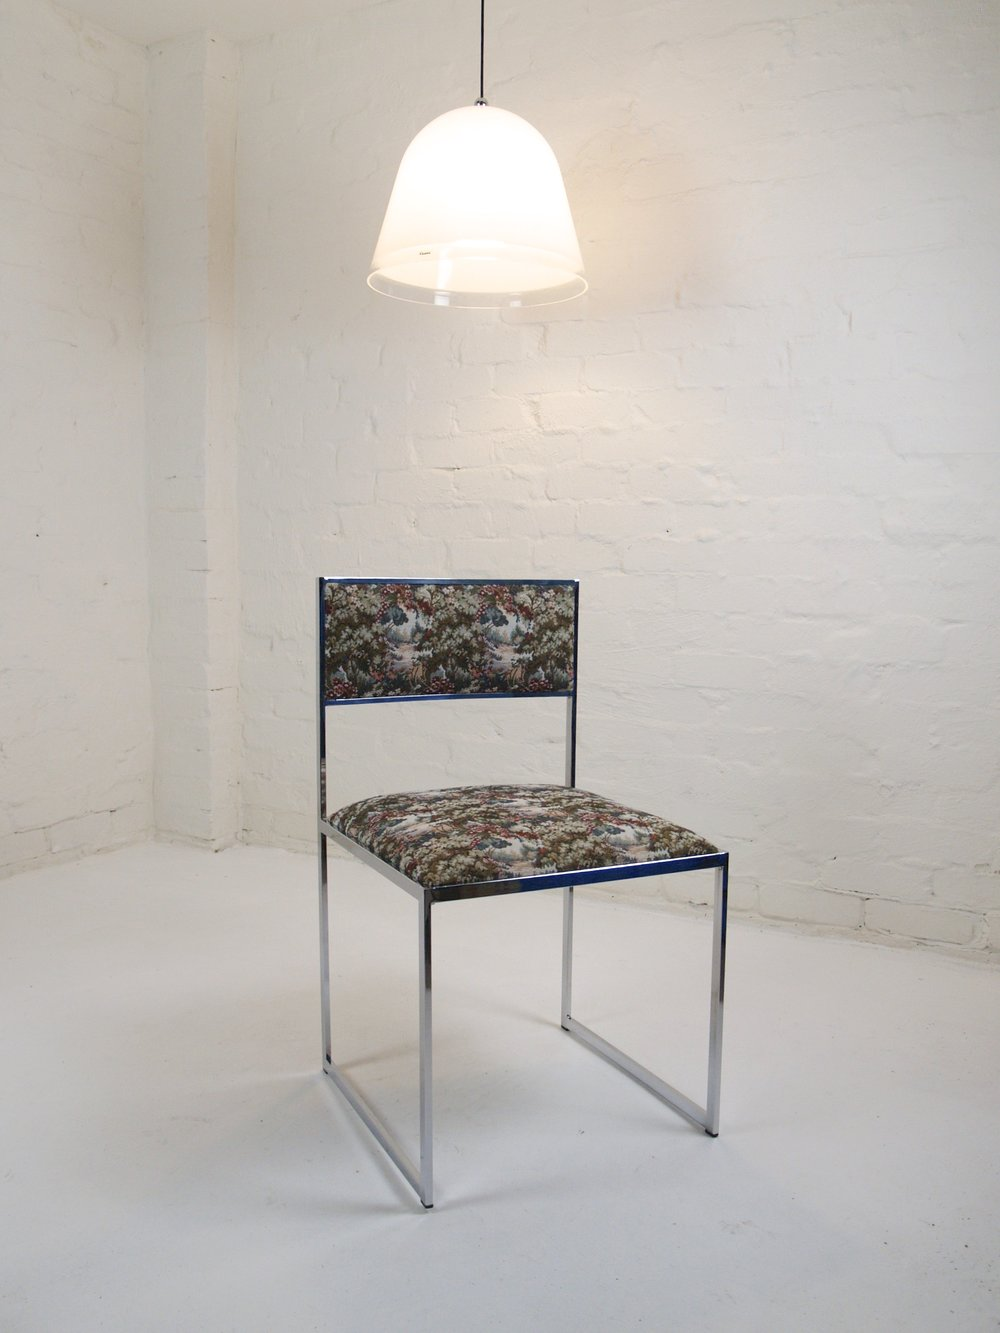 Big love for 8 Willy Rizzo chairs, road freighted to Perth - 'The chairs arrived (safely)...we are in love with them. Thanks for all your help and packing'Waldemar Kolbusz,Artist, www.kolbusz.com.au